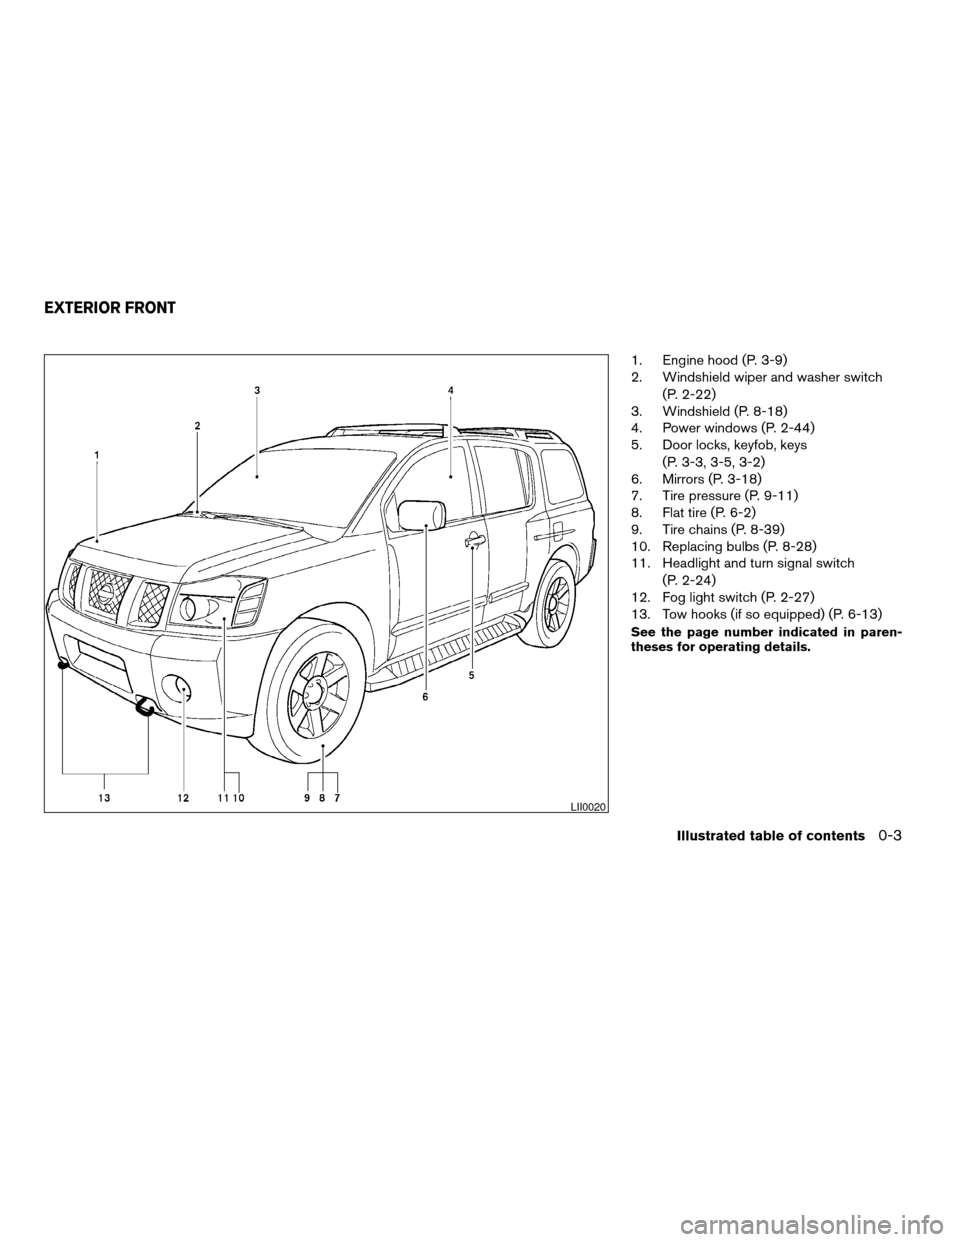 NISSAN ARMADA 2006 1.G Owners Manual